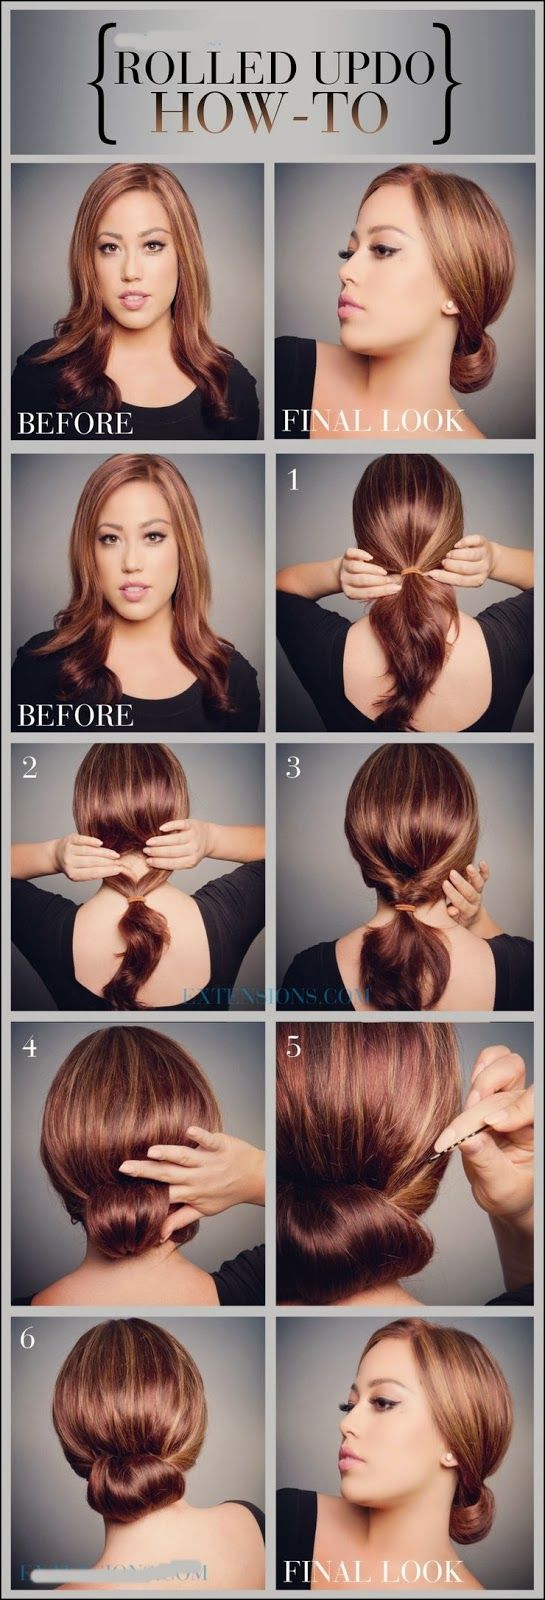 It's officially wedding season! Check out this super easy updo tutorial to look your best on any special day